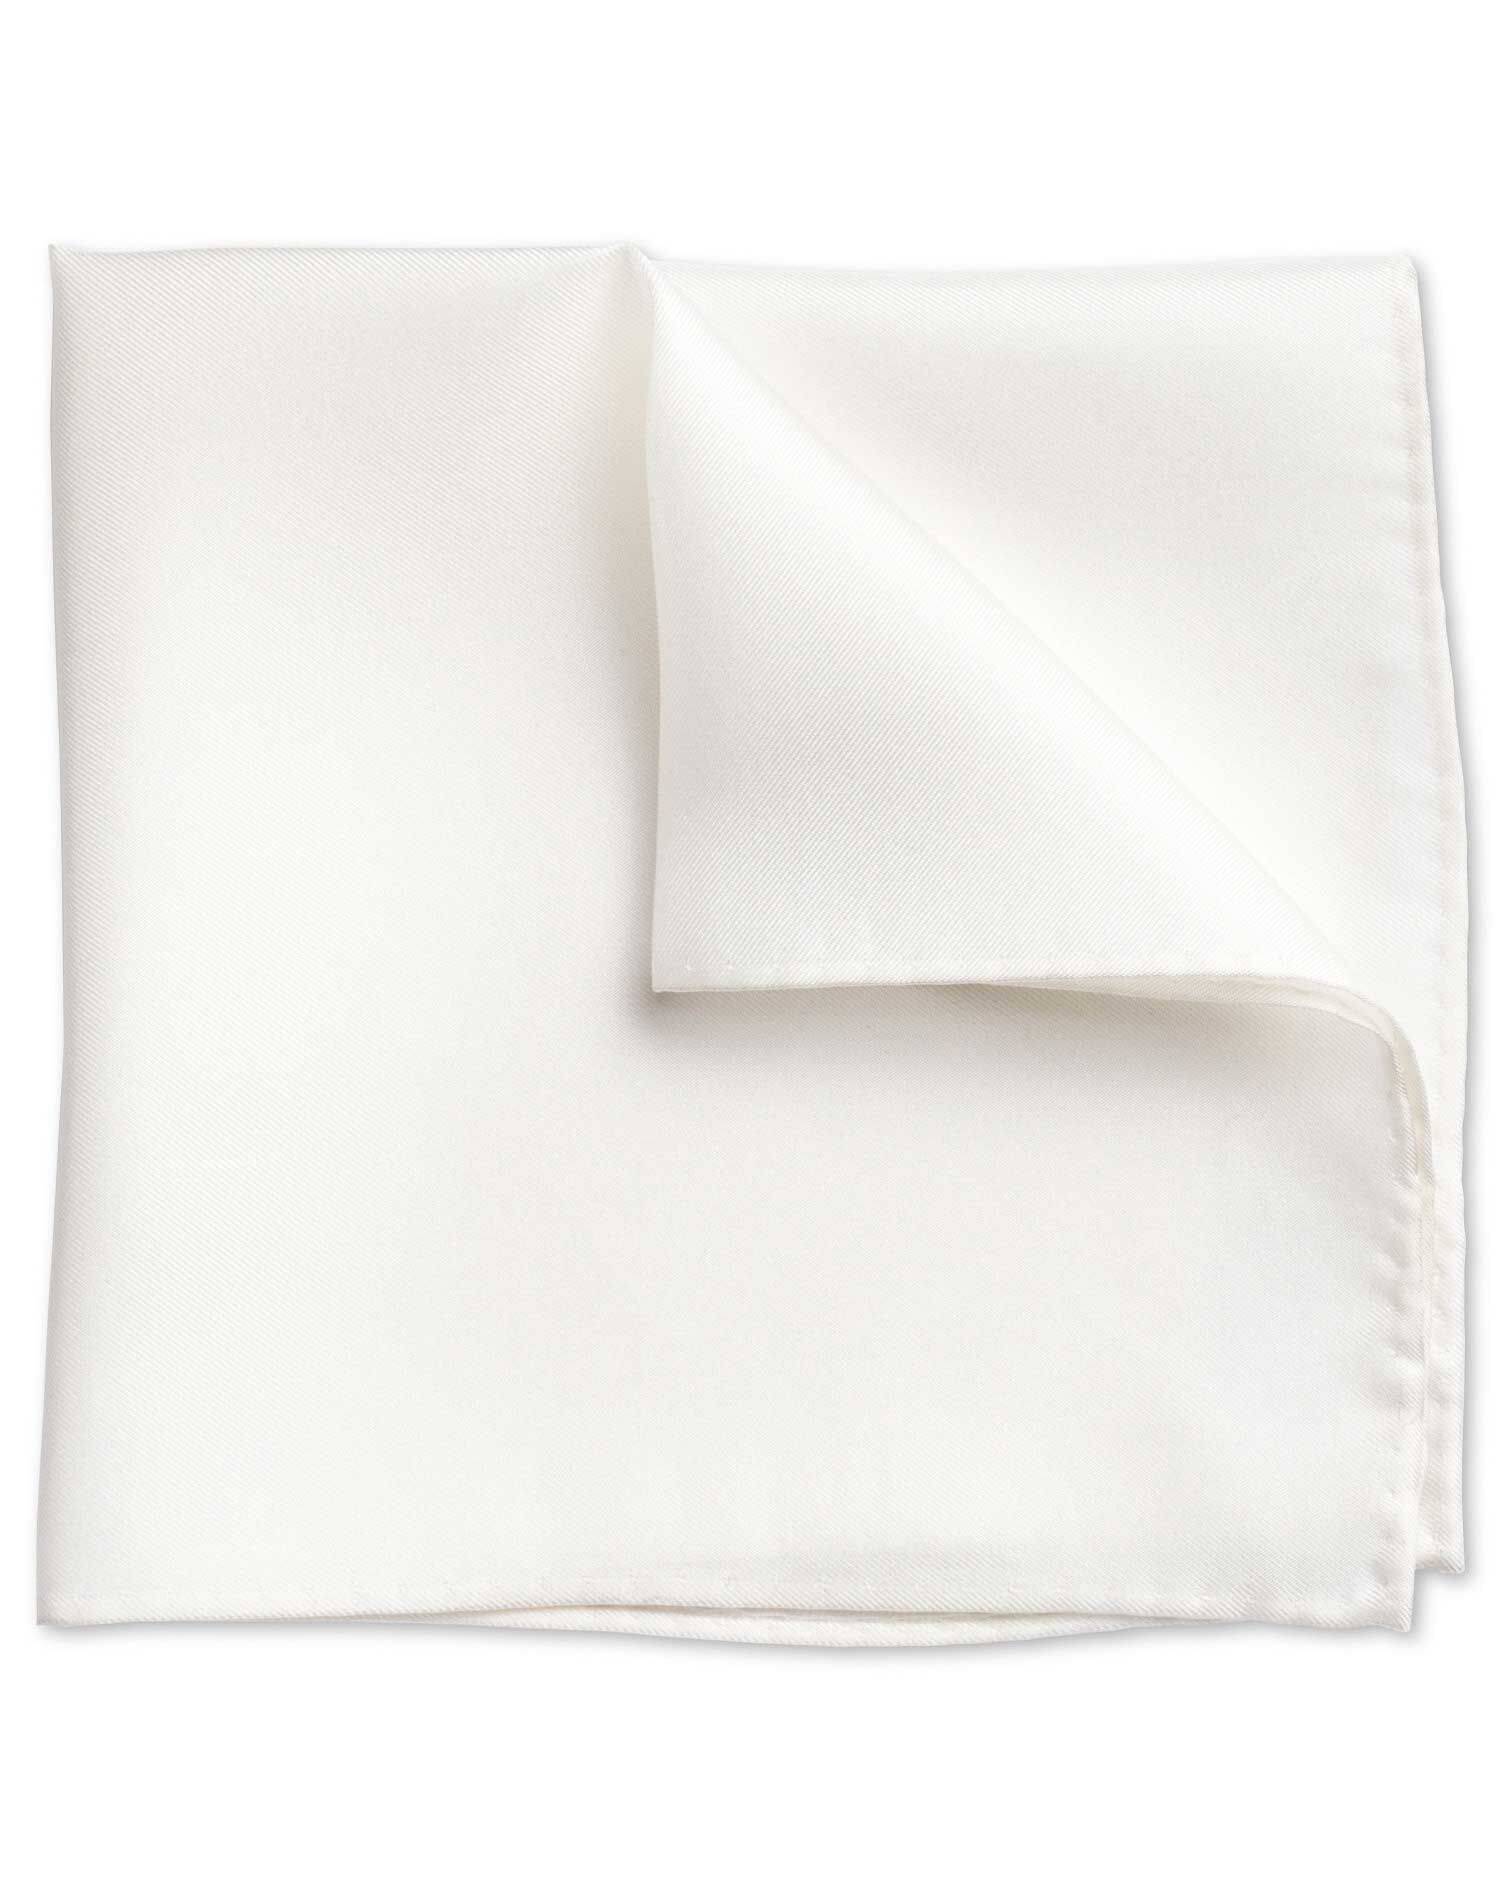 Victorian Men's Formal Wear, Wedding Tuxedo Charles Tyrwhitt White silk evening pocket square £14.95 AT vintagedancer.com